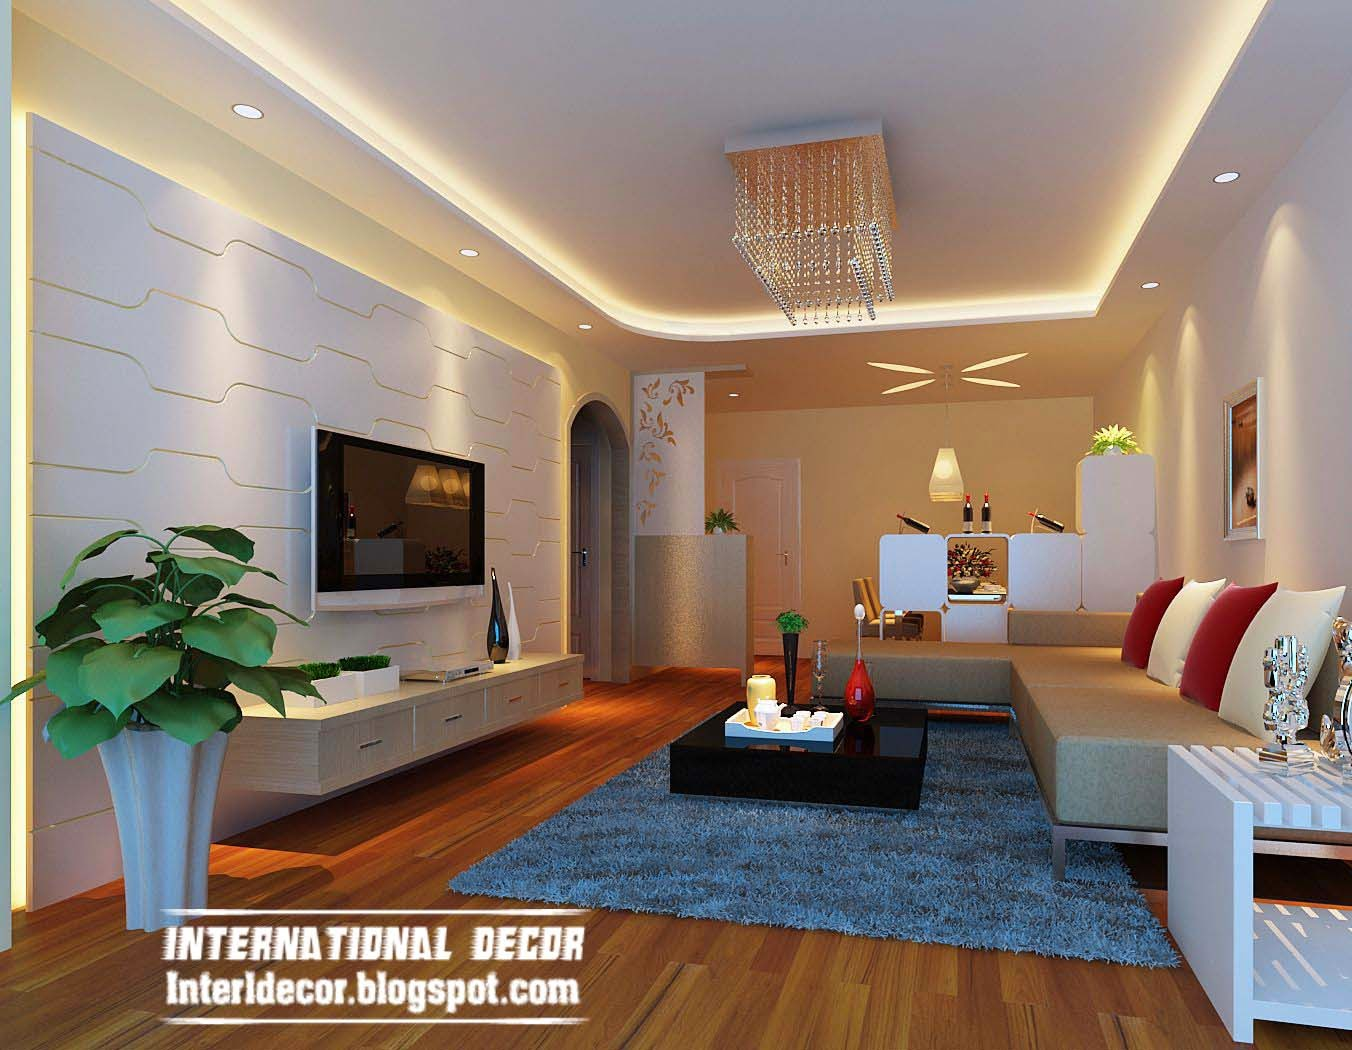 Suspended Ceiling Pop Designs For Living Room 2014, Suspended Ceiling